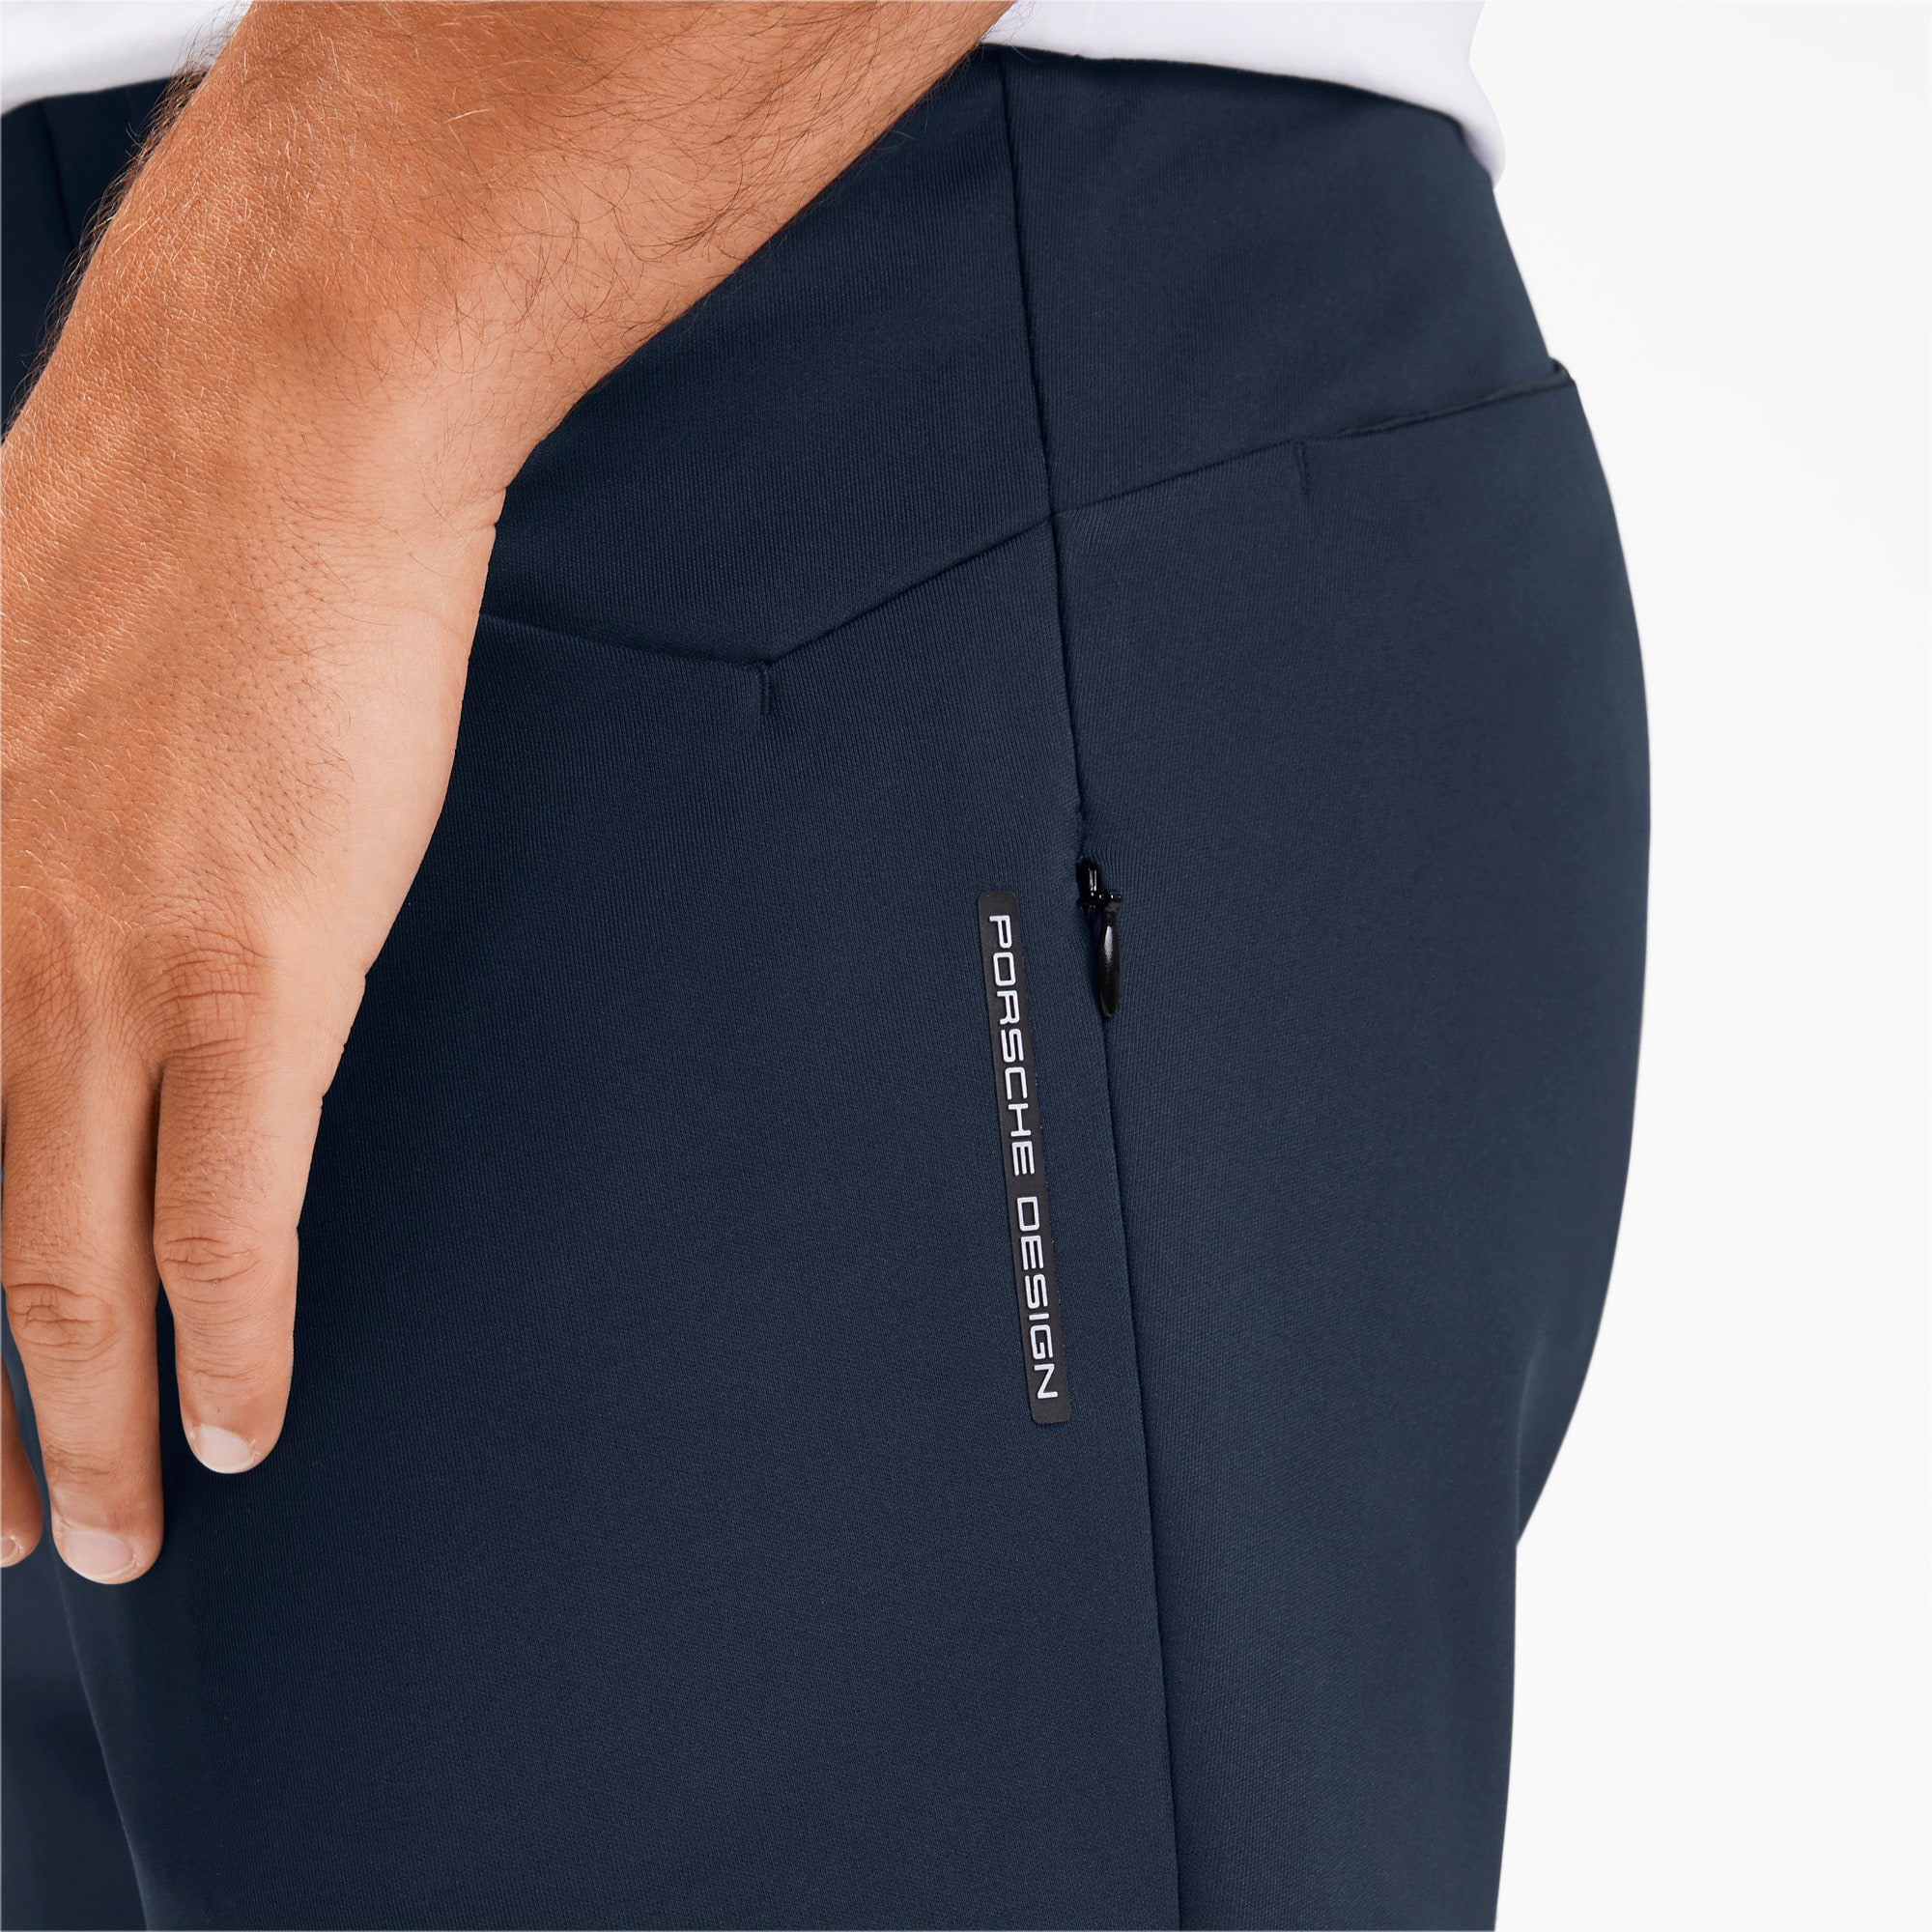 Thumbnail 6 of Porsche Design Herren 5 Pocket Hose, Navy Blazer, medium